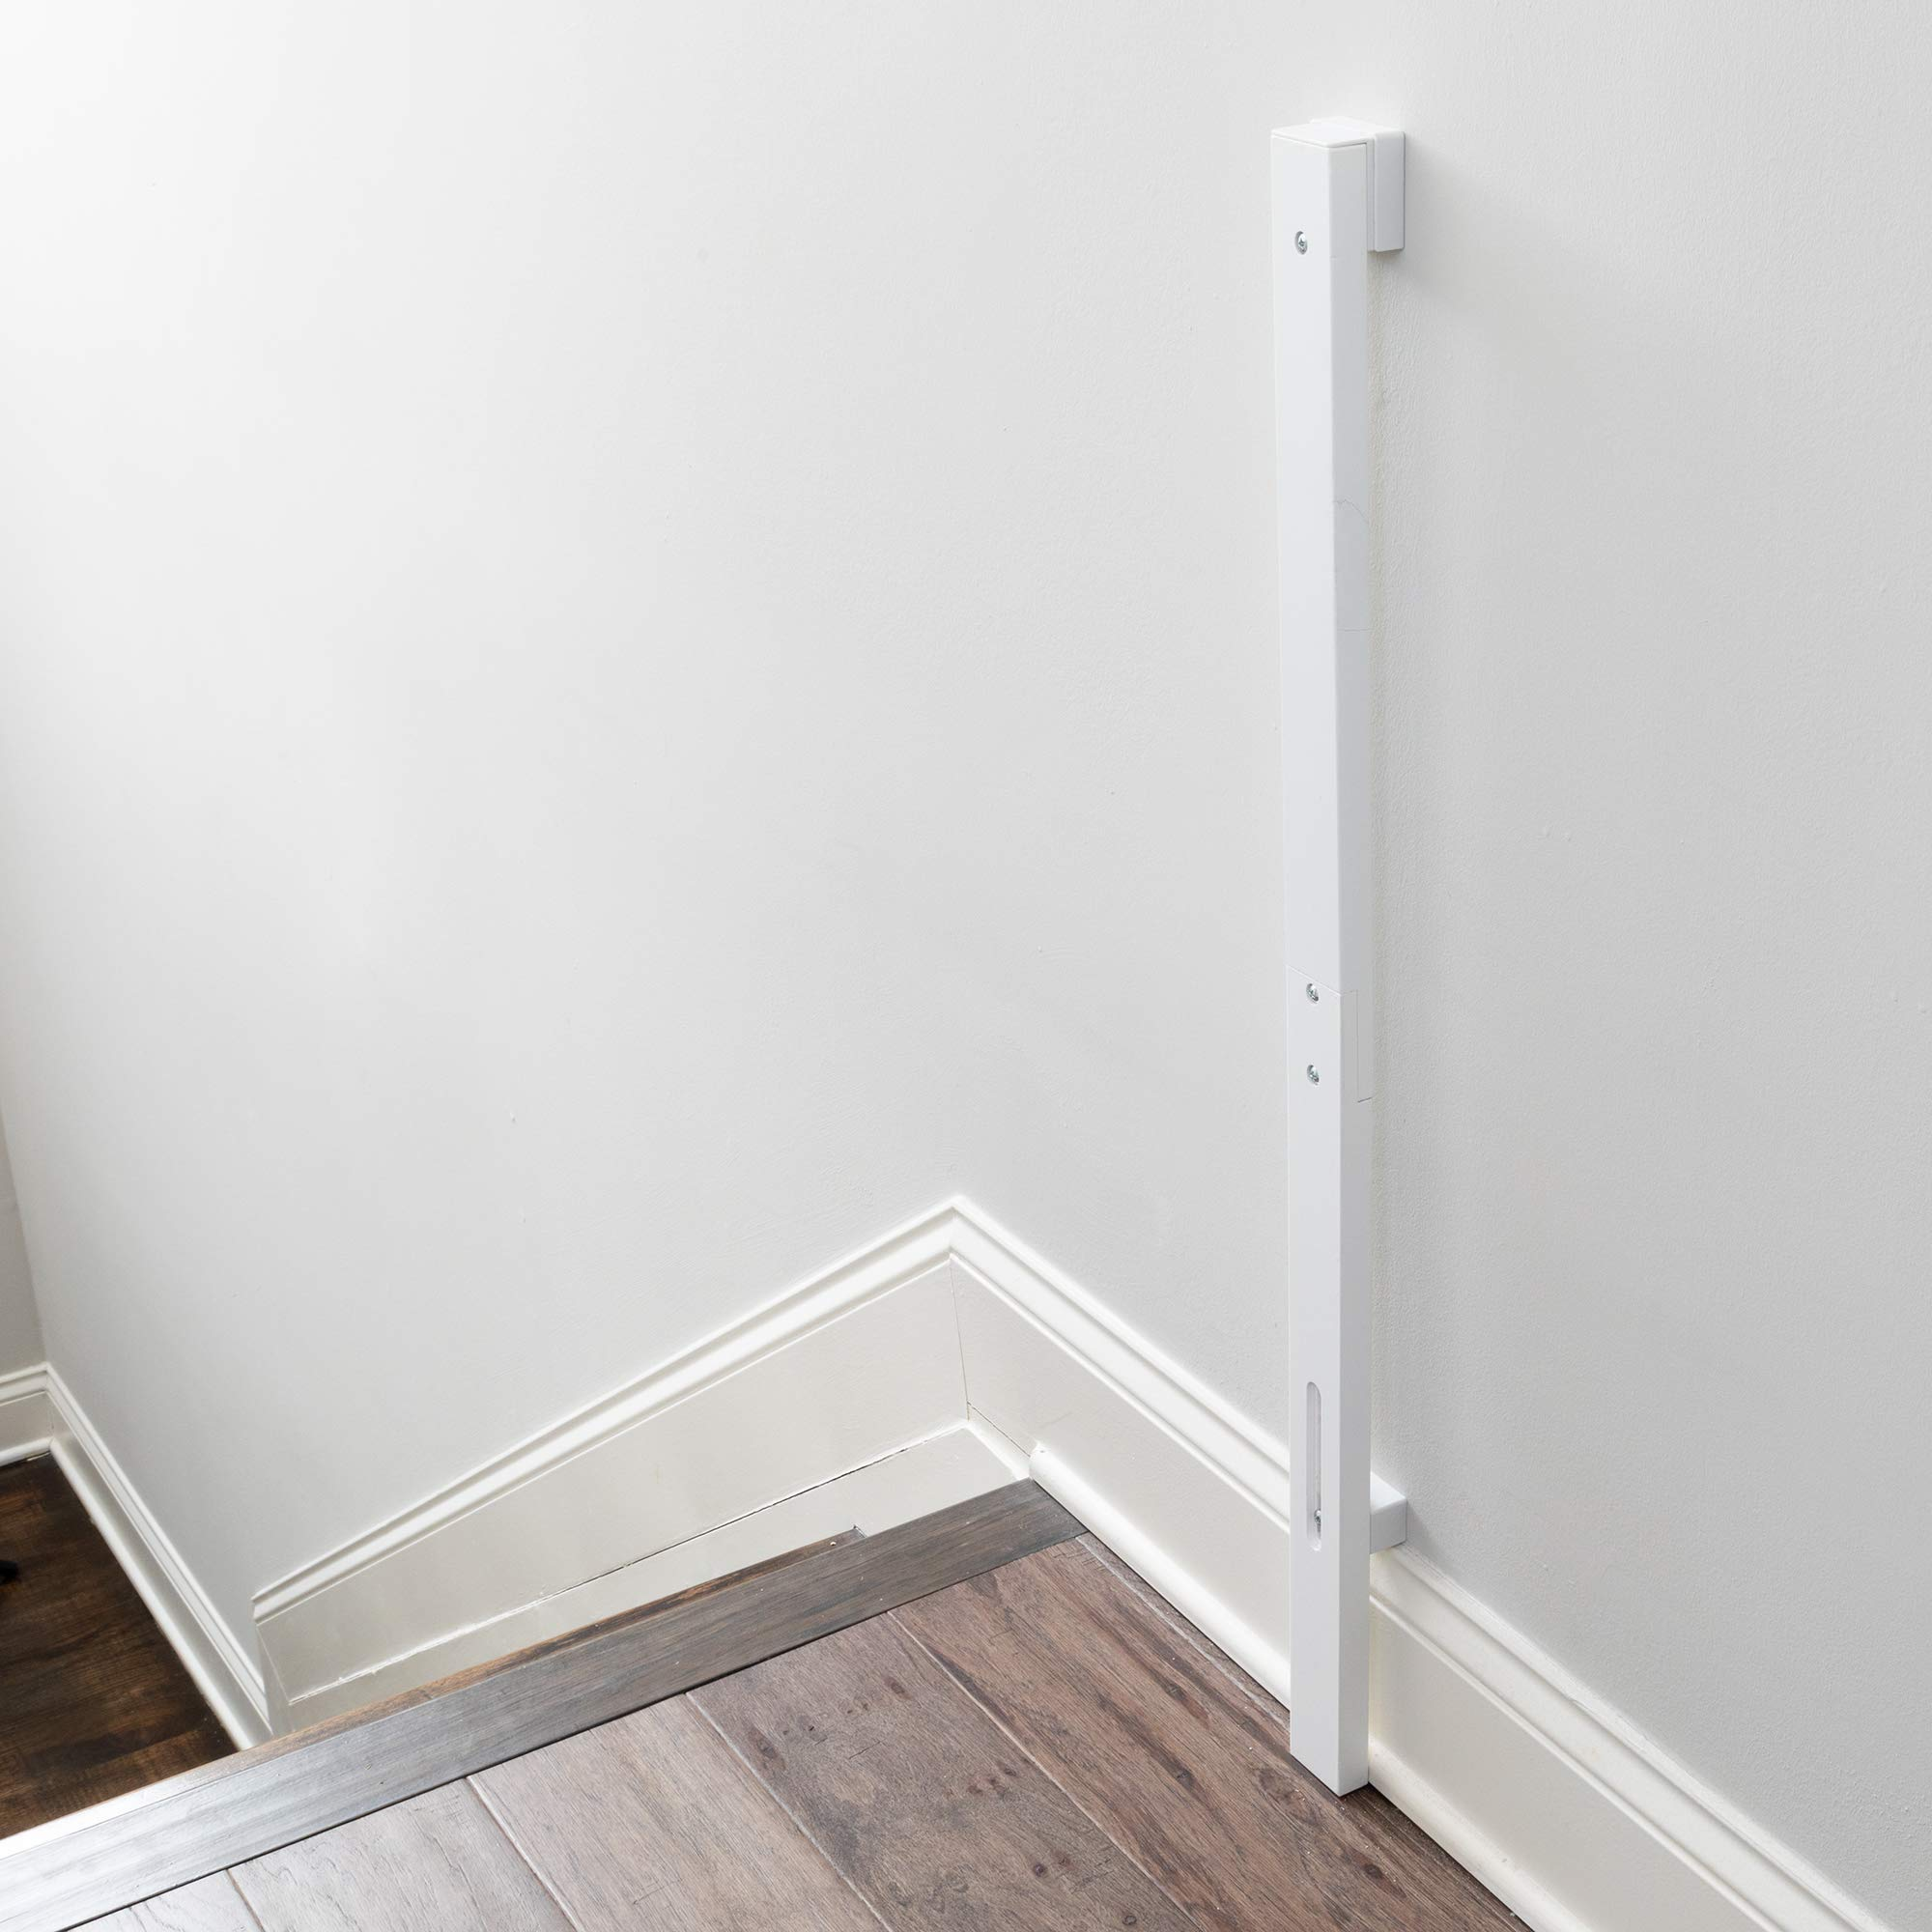 Qdos Universal Baseboard Kit for All Baby Gate - Professional Grade Safety - Universal Solution for Gate Installation Over a Baseboard - Works with All Gates - Easy Installation   White